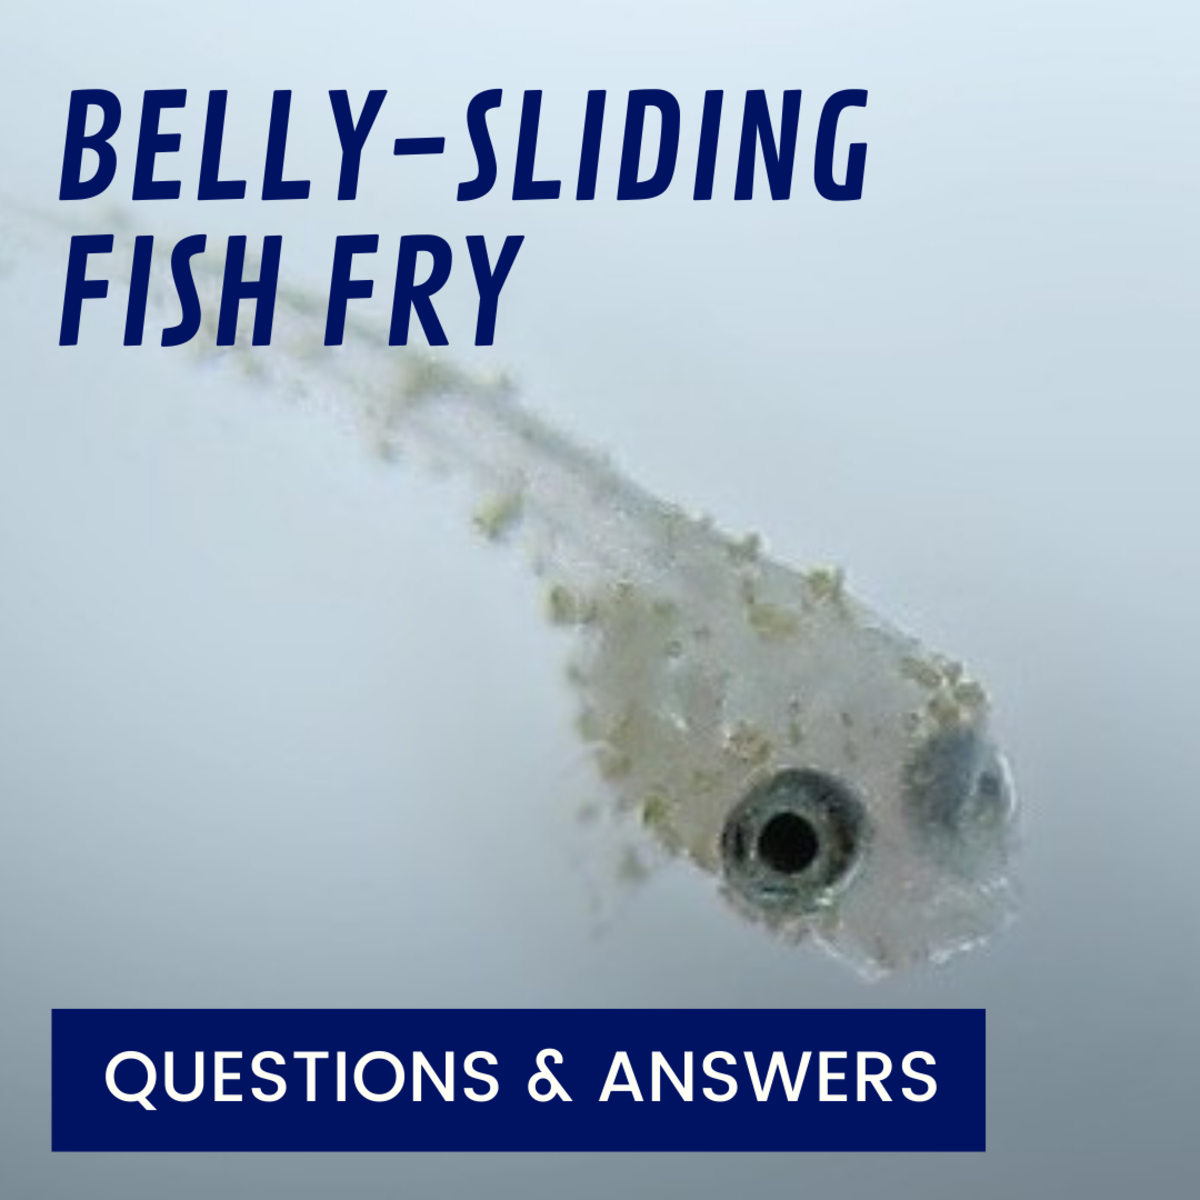 Belly-Sliding Fish Fry: What Does It Mean?